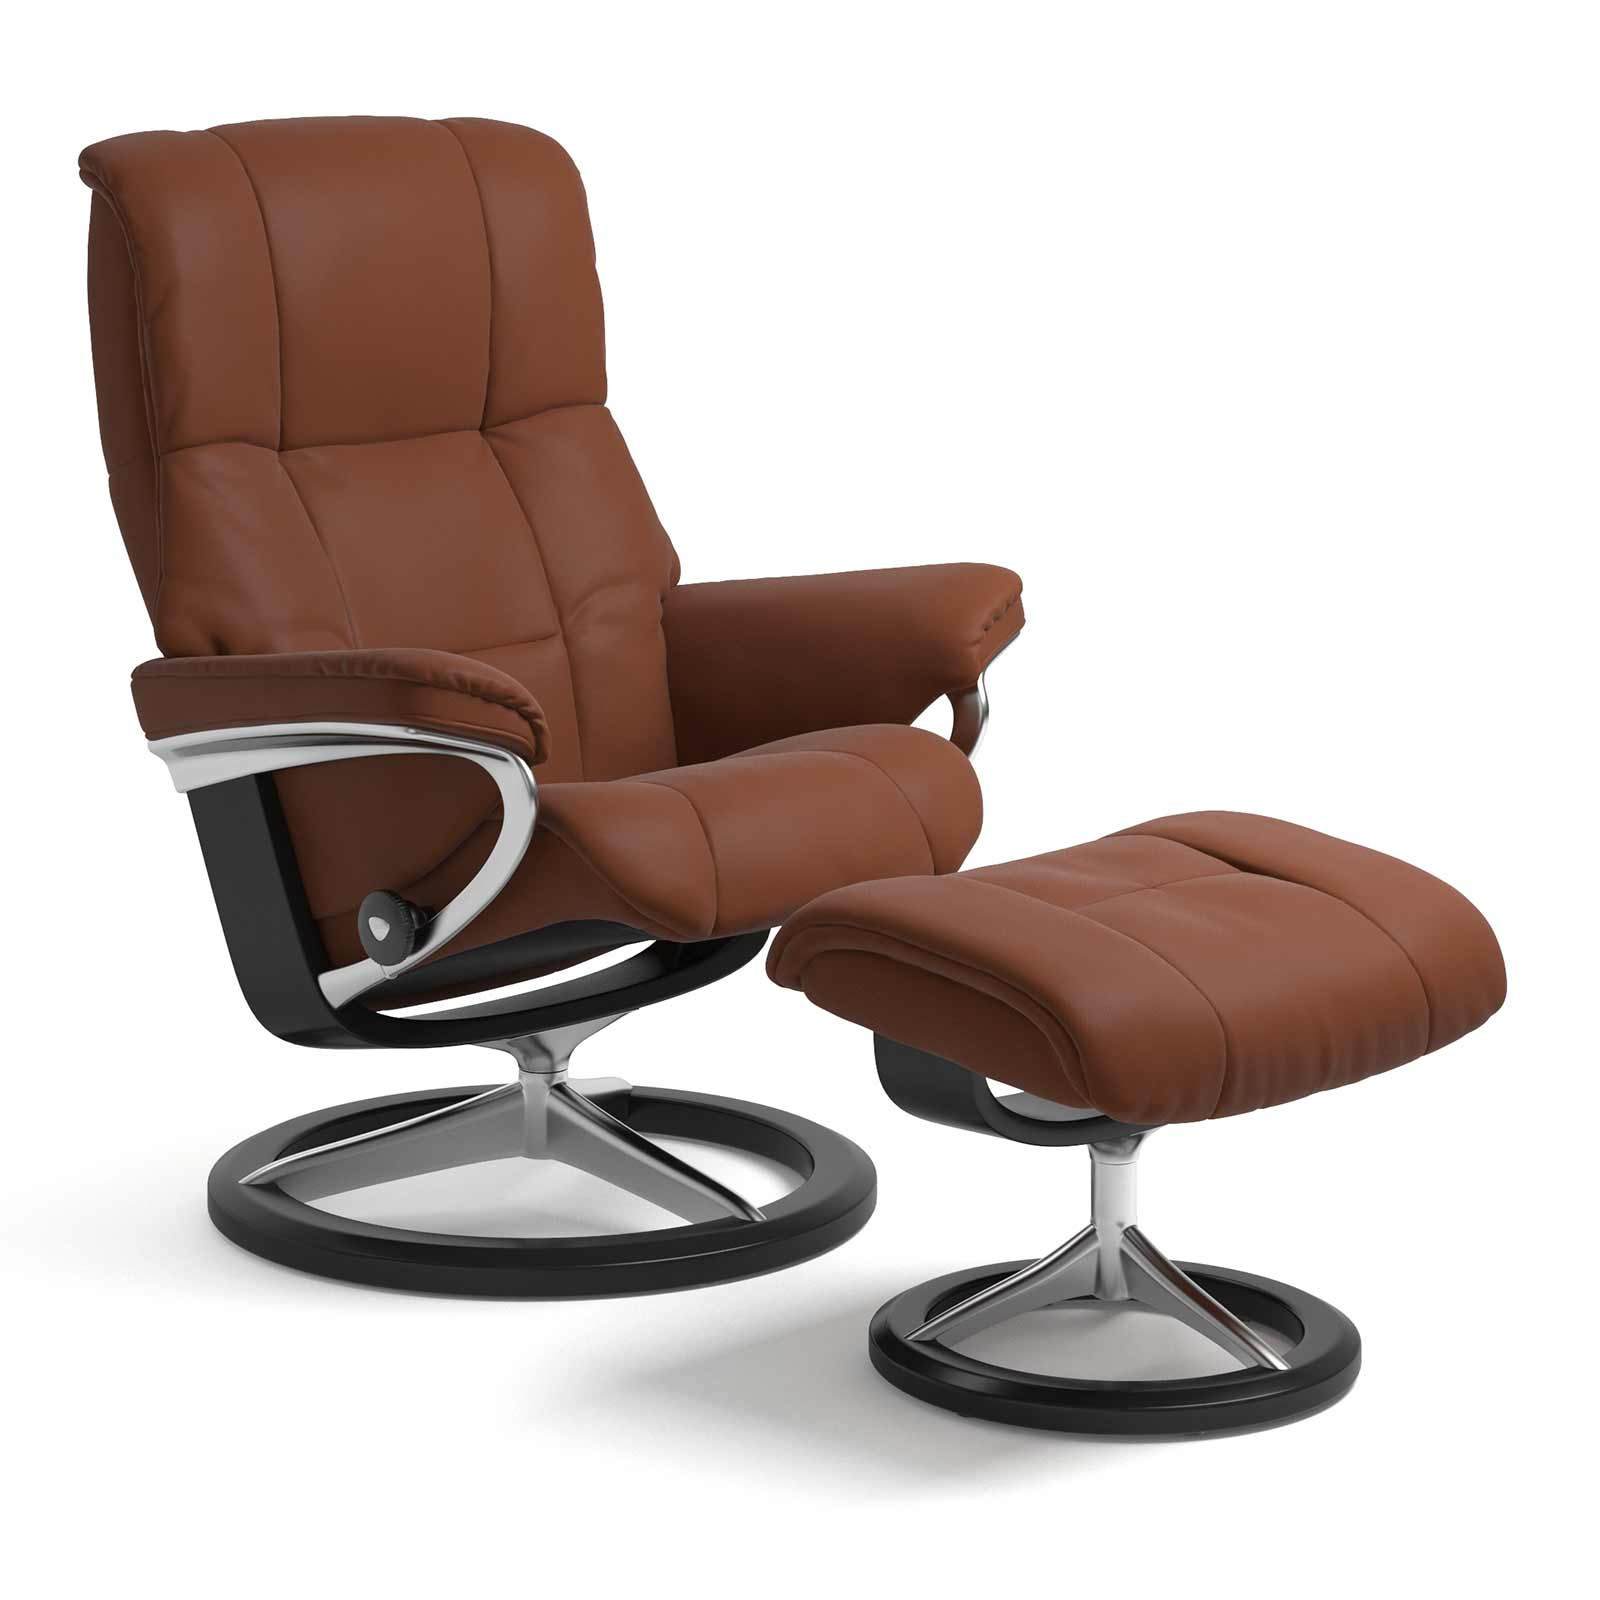 Stressless Wing Signature Sessel Stressless Sessel Mayfair Signature Paloma Copper Mit Hocker